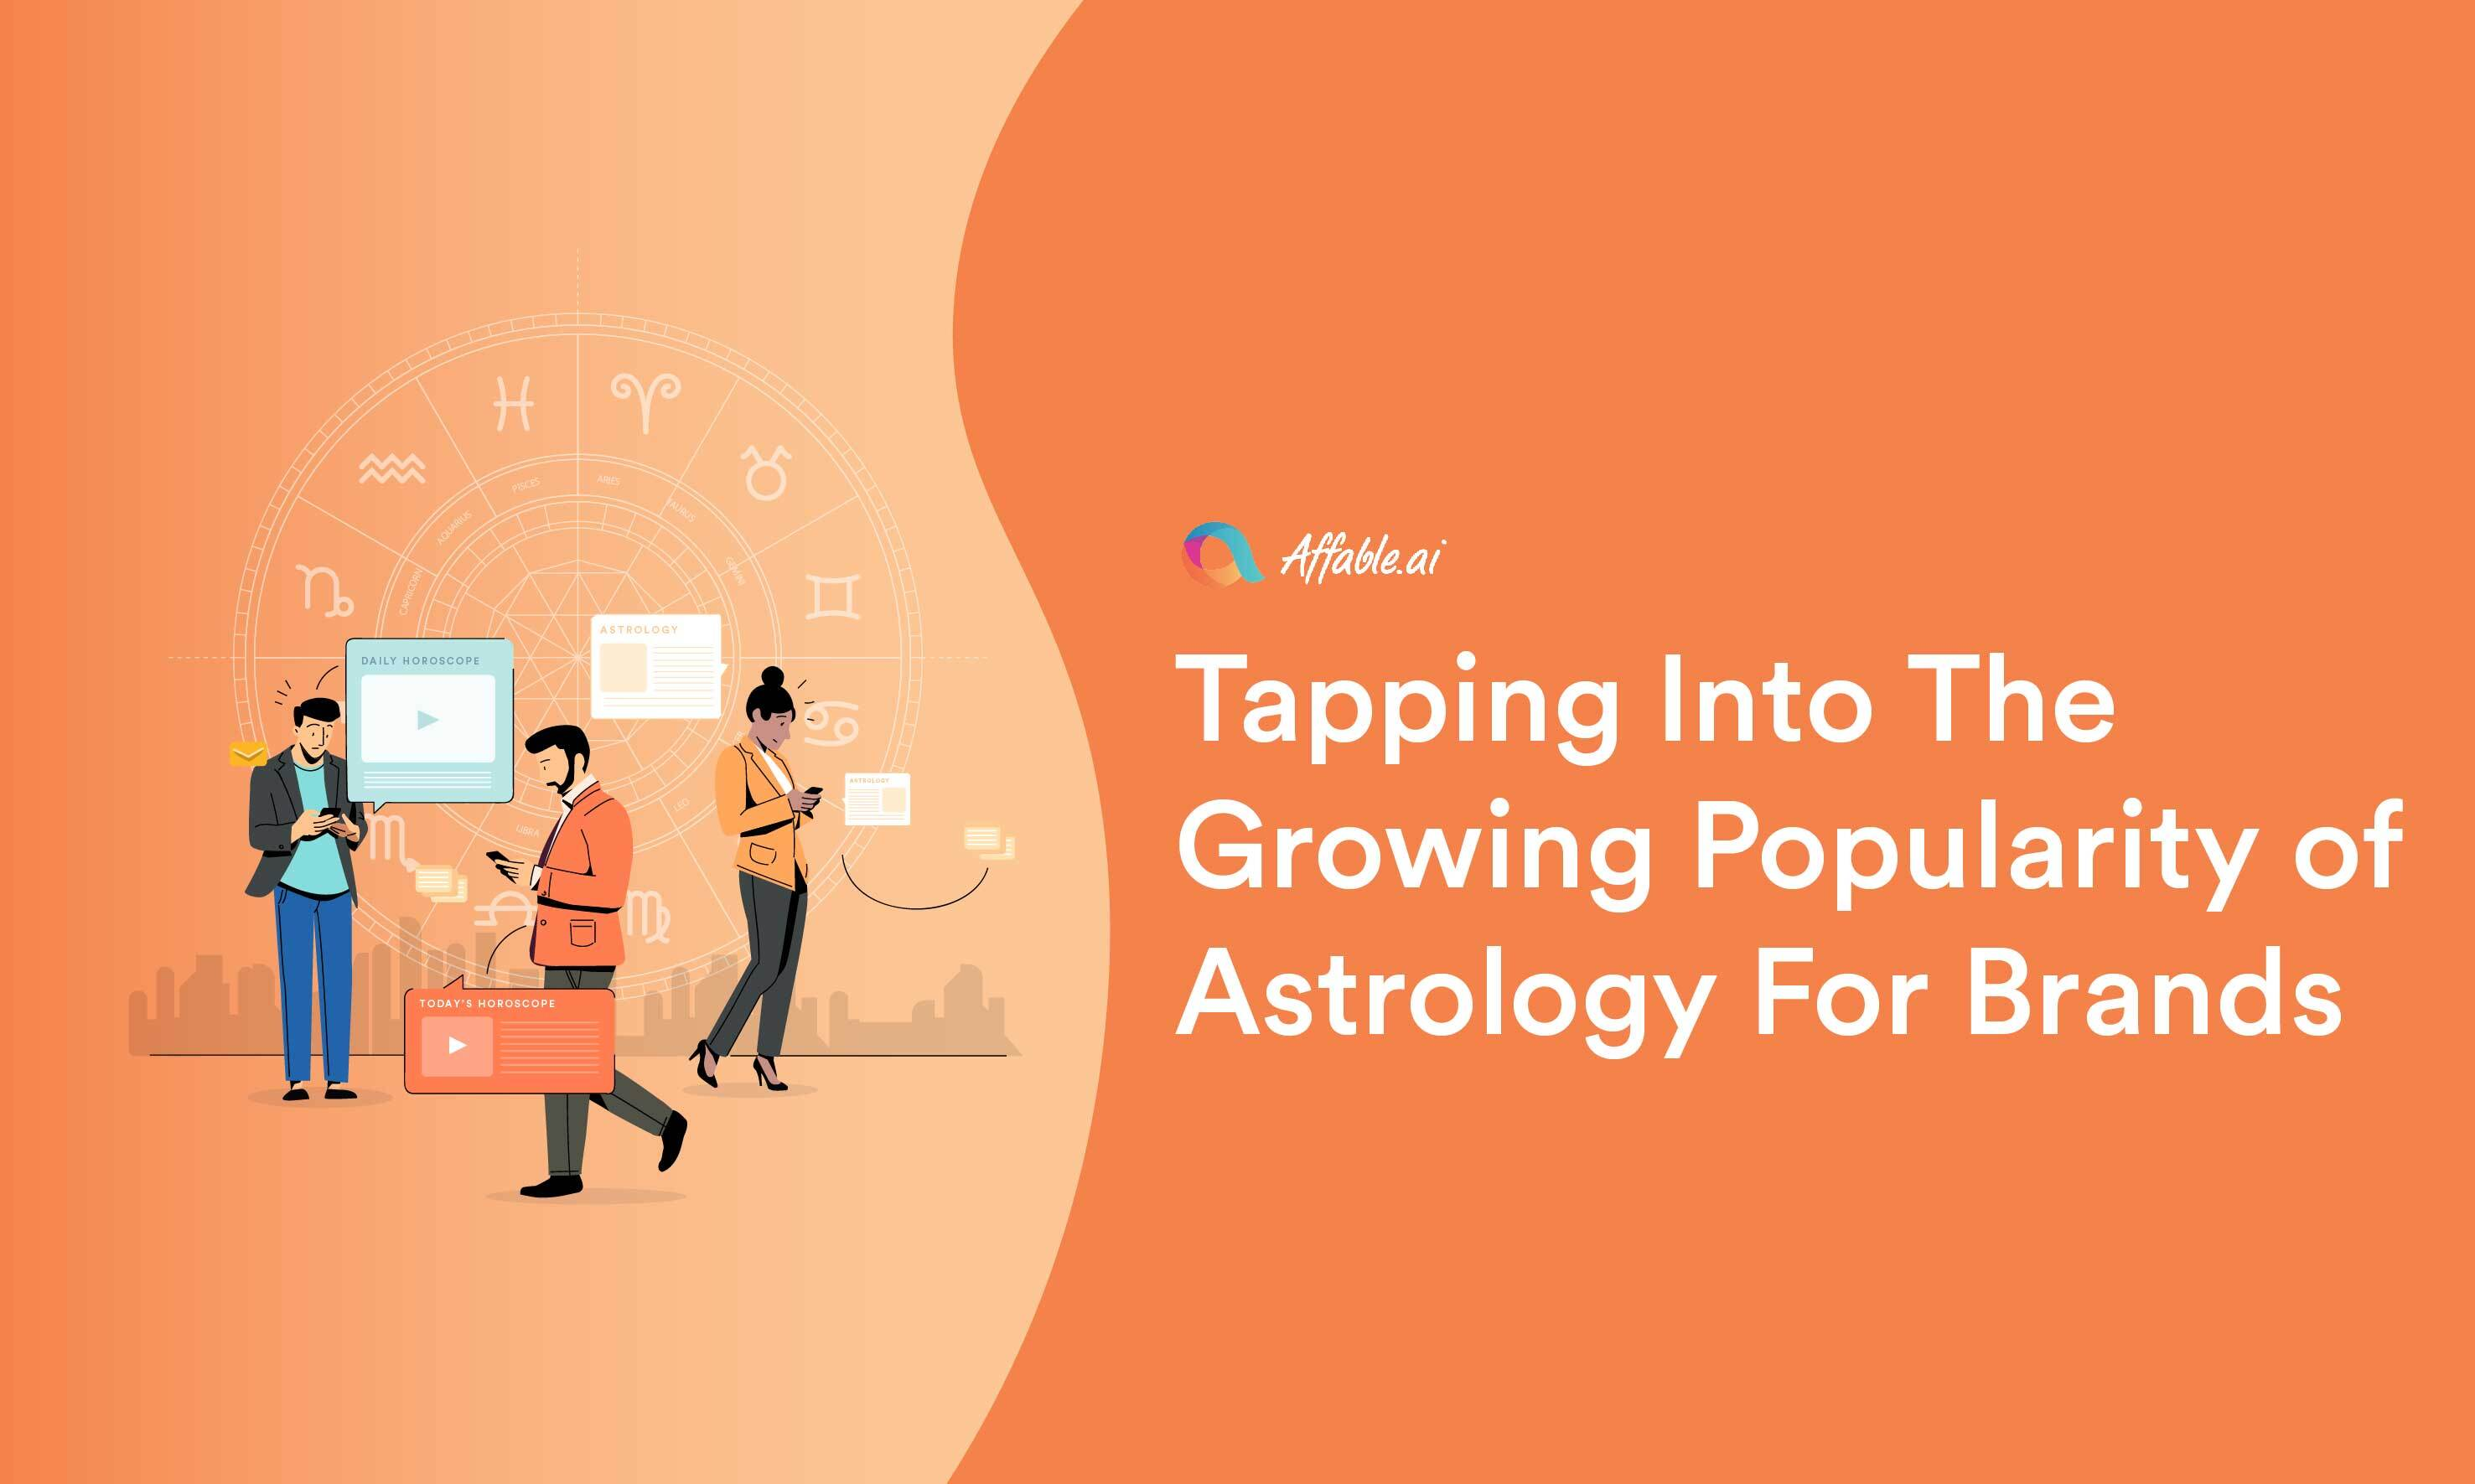 Tapping into the Growing Popularity of Astrology For Brands